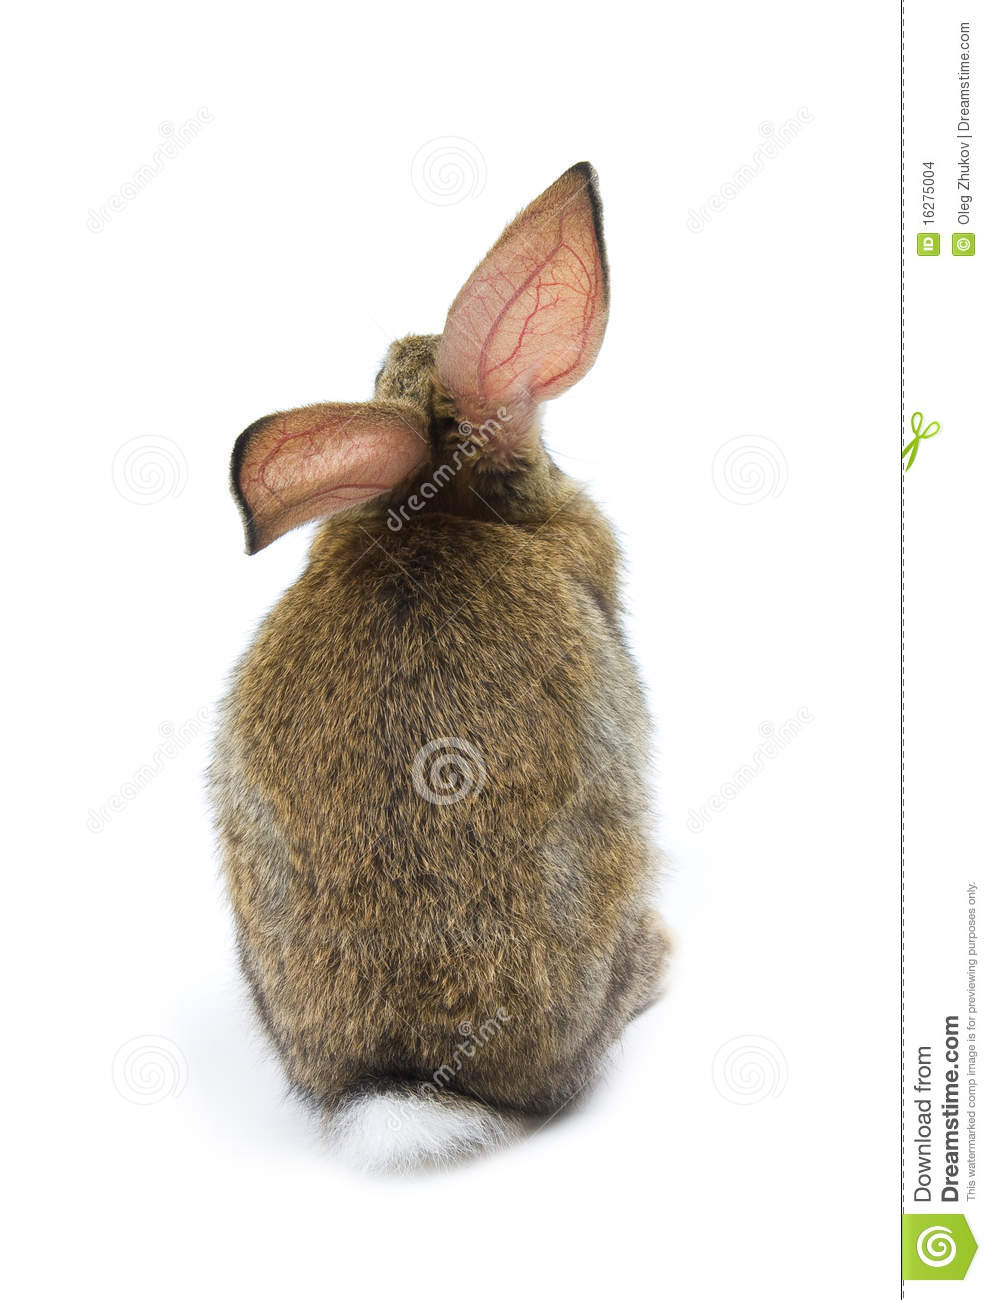 Happy New Year Of Rabbit Stock Images - Image: 16275004